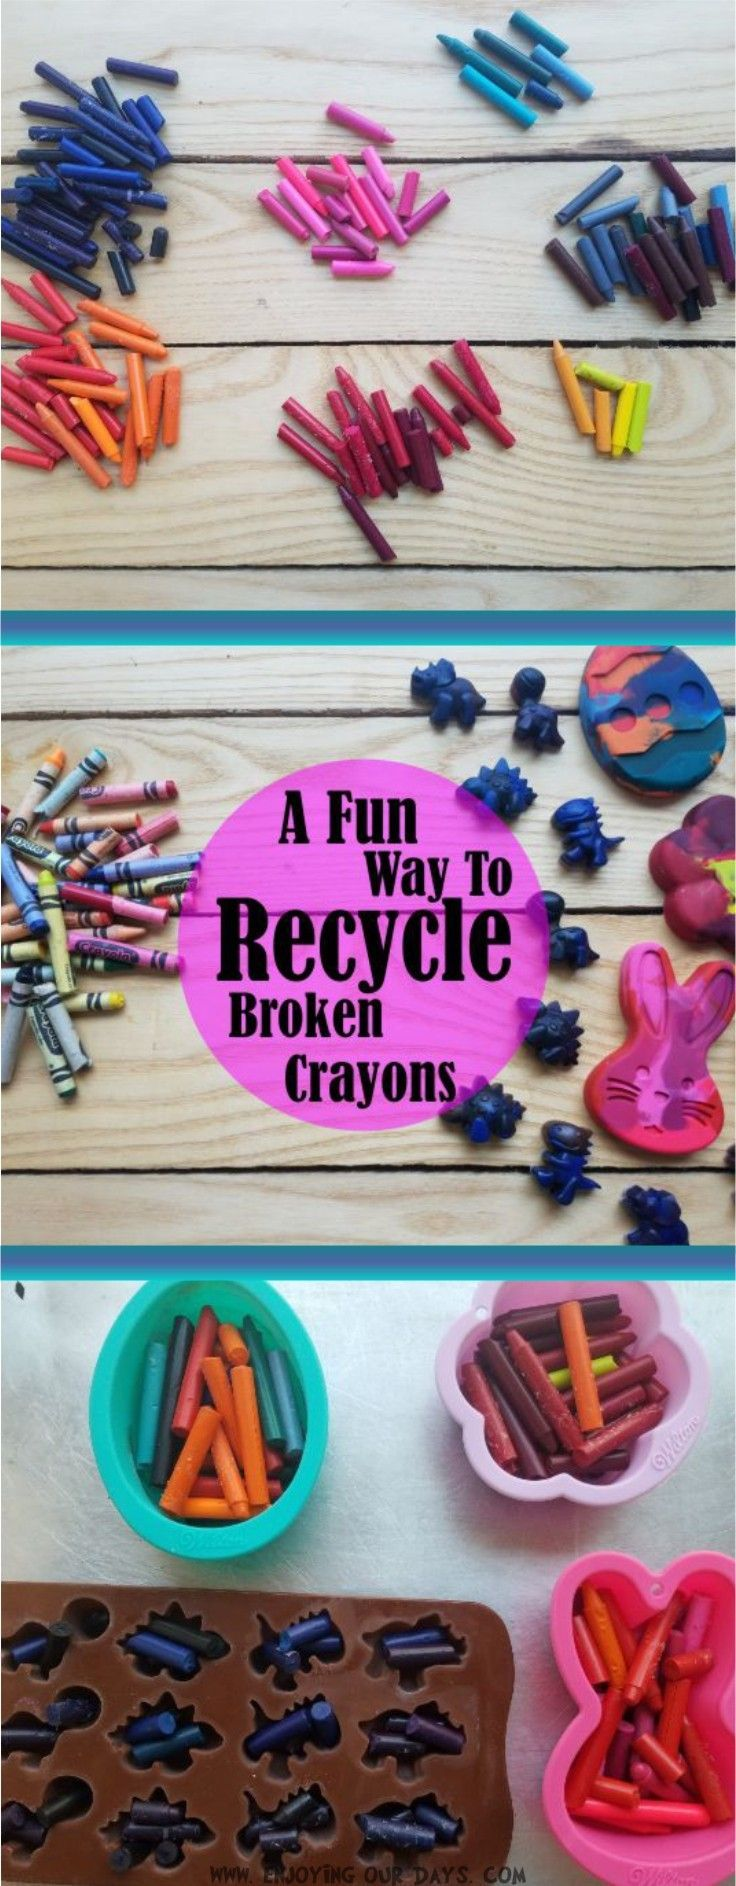 Crafts for one year olds - A Fun Way To Recycle Broken Crayons